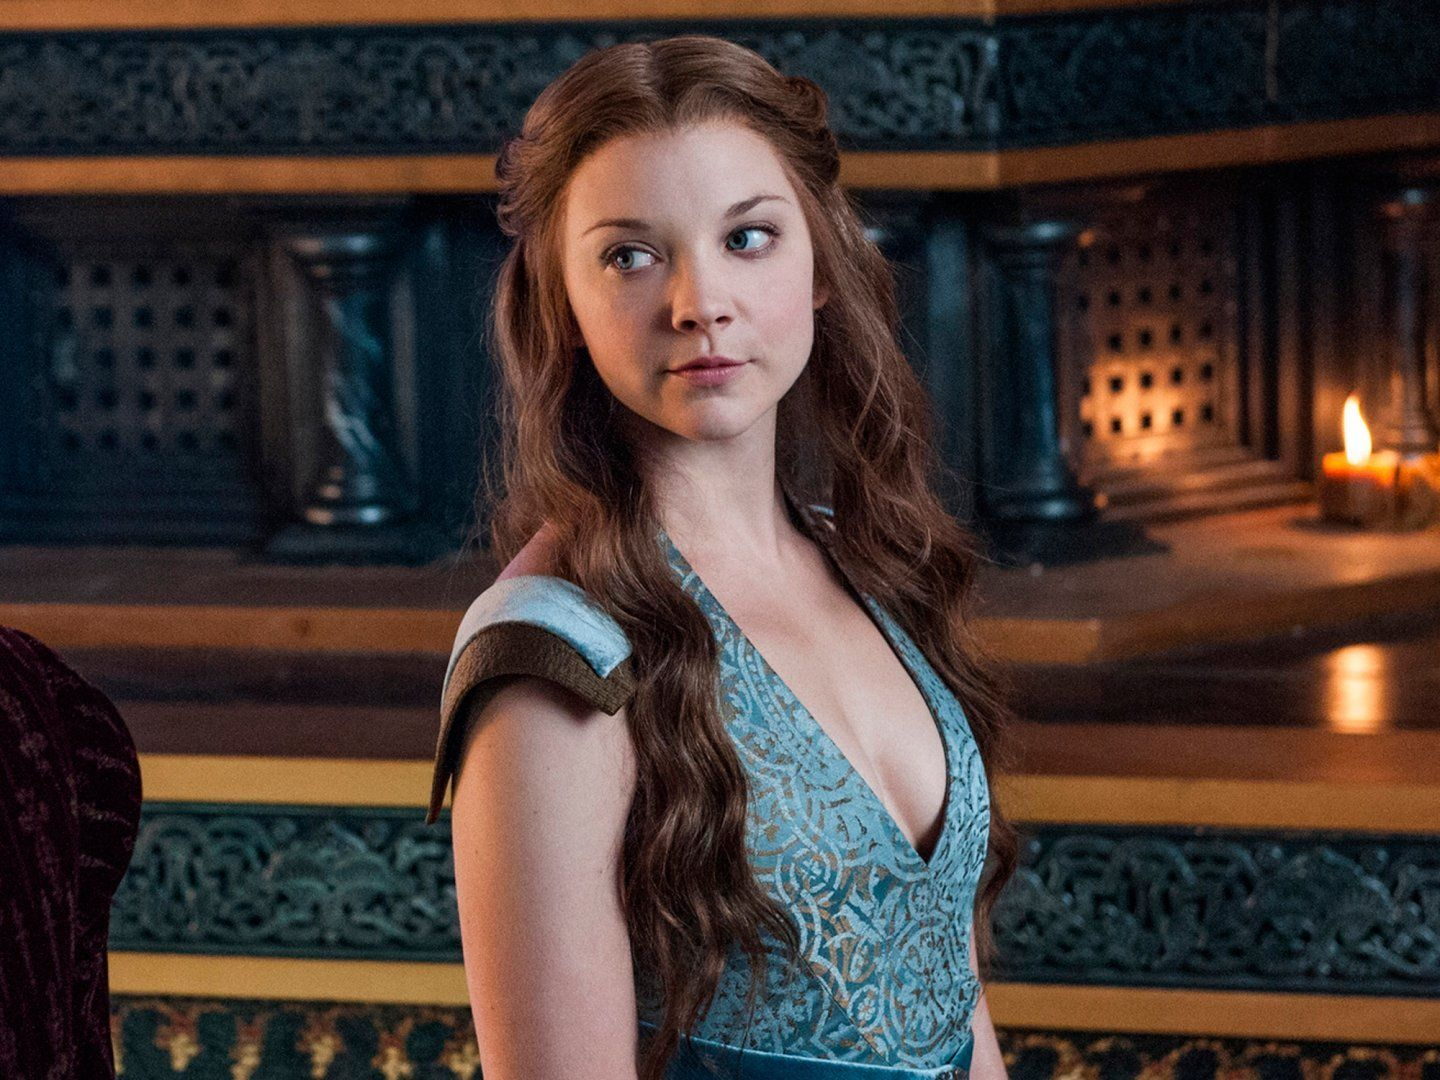 Game of thrones sexy pics